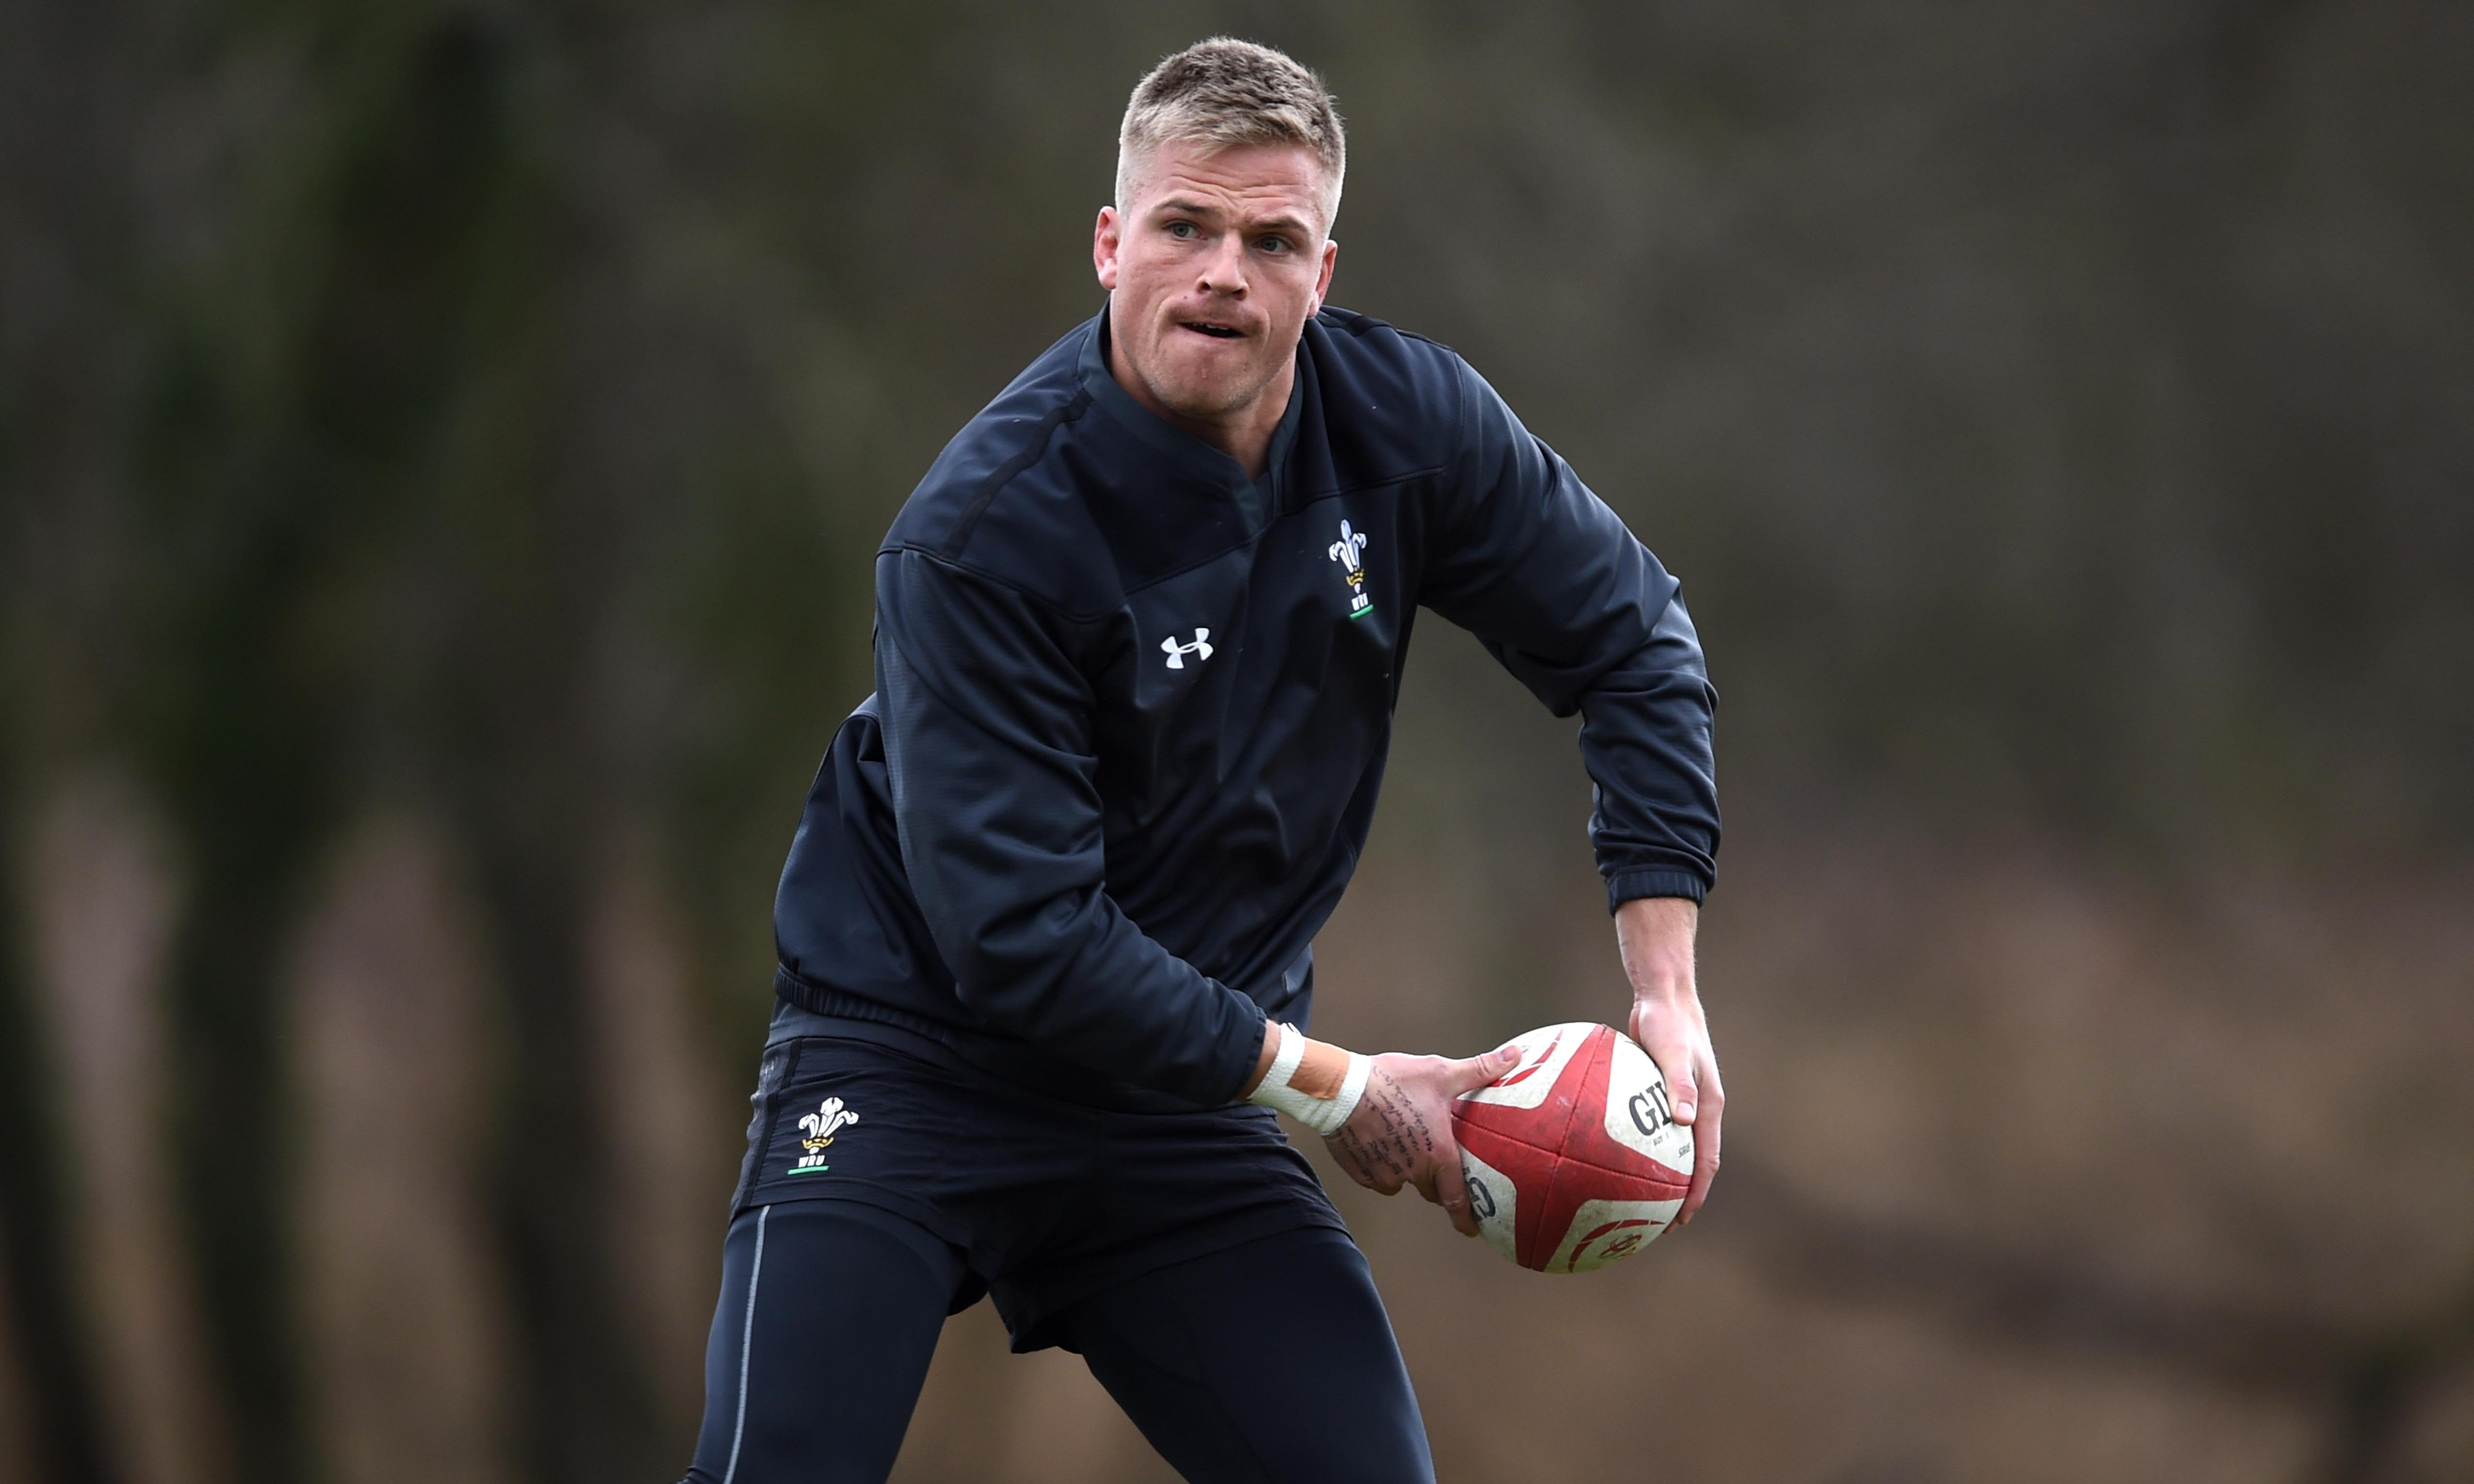 Gareth Anscombe preferred at fly half for Wales's clash with England